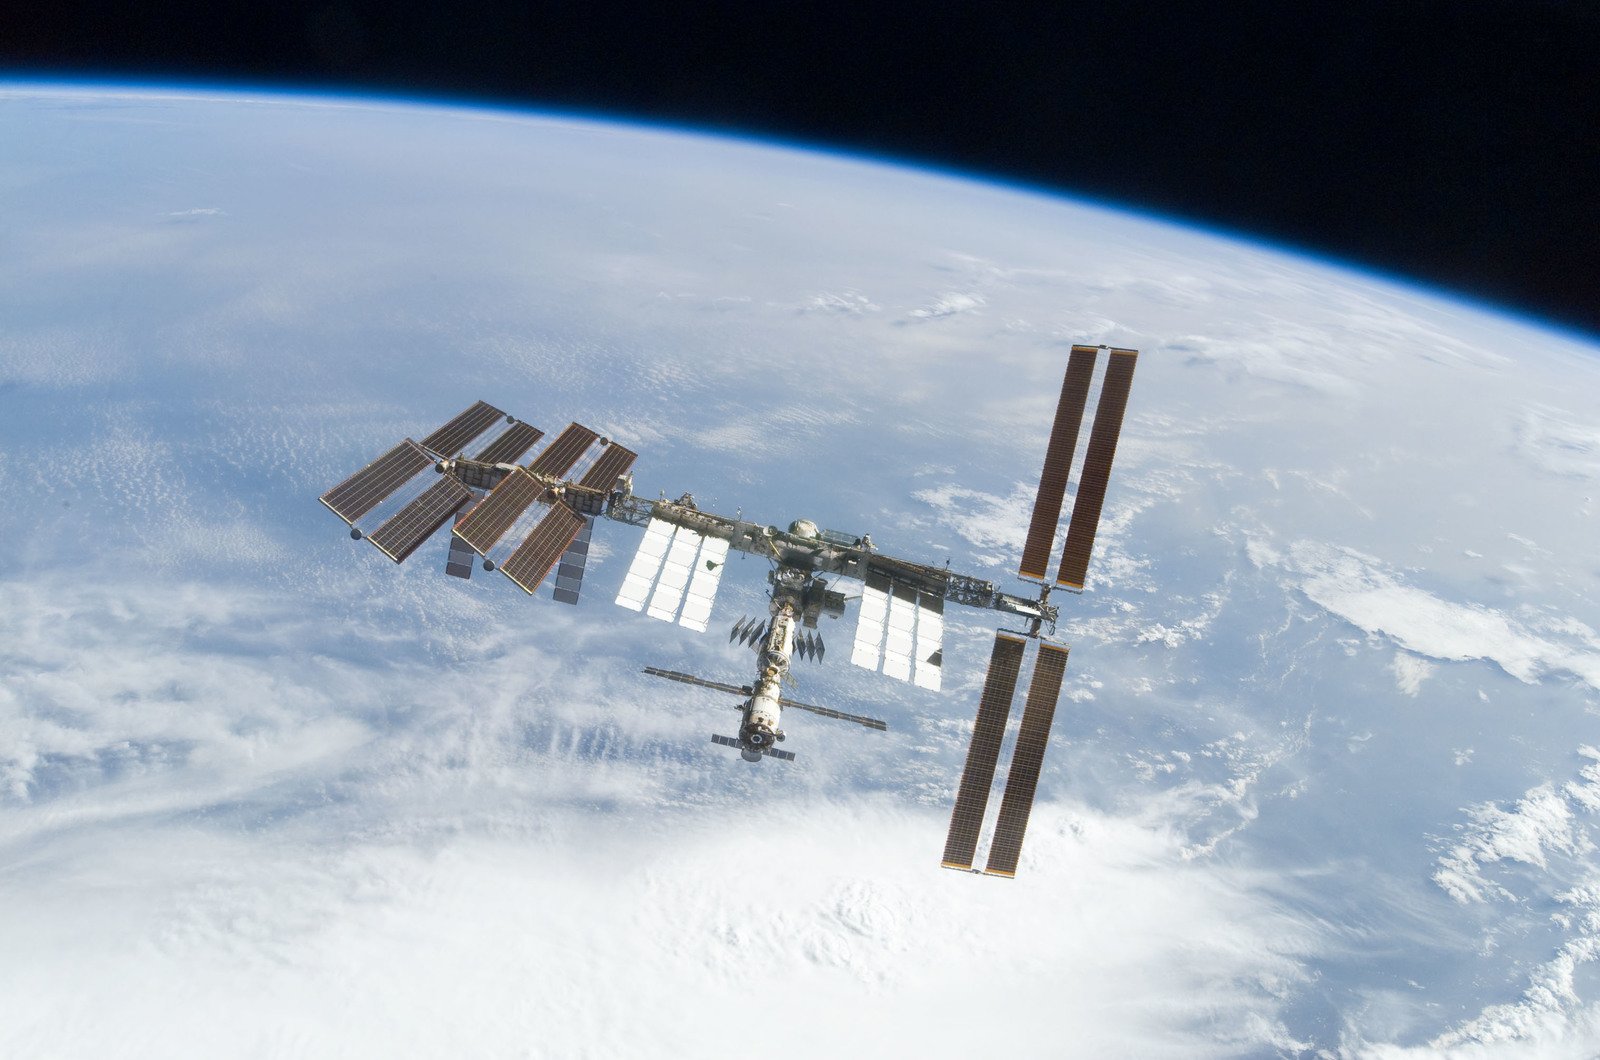 S122E010940 - STS-122 - View of ISS after STS-122 Undocking